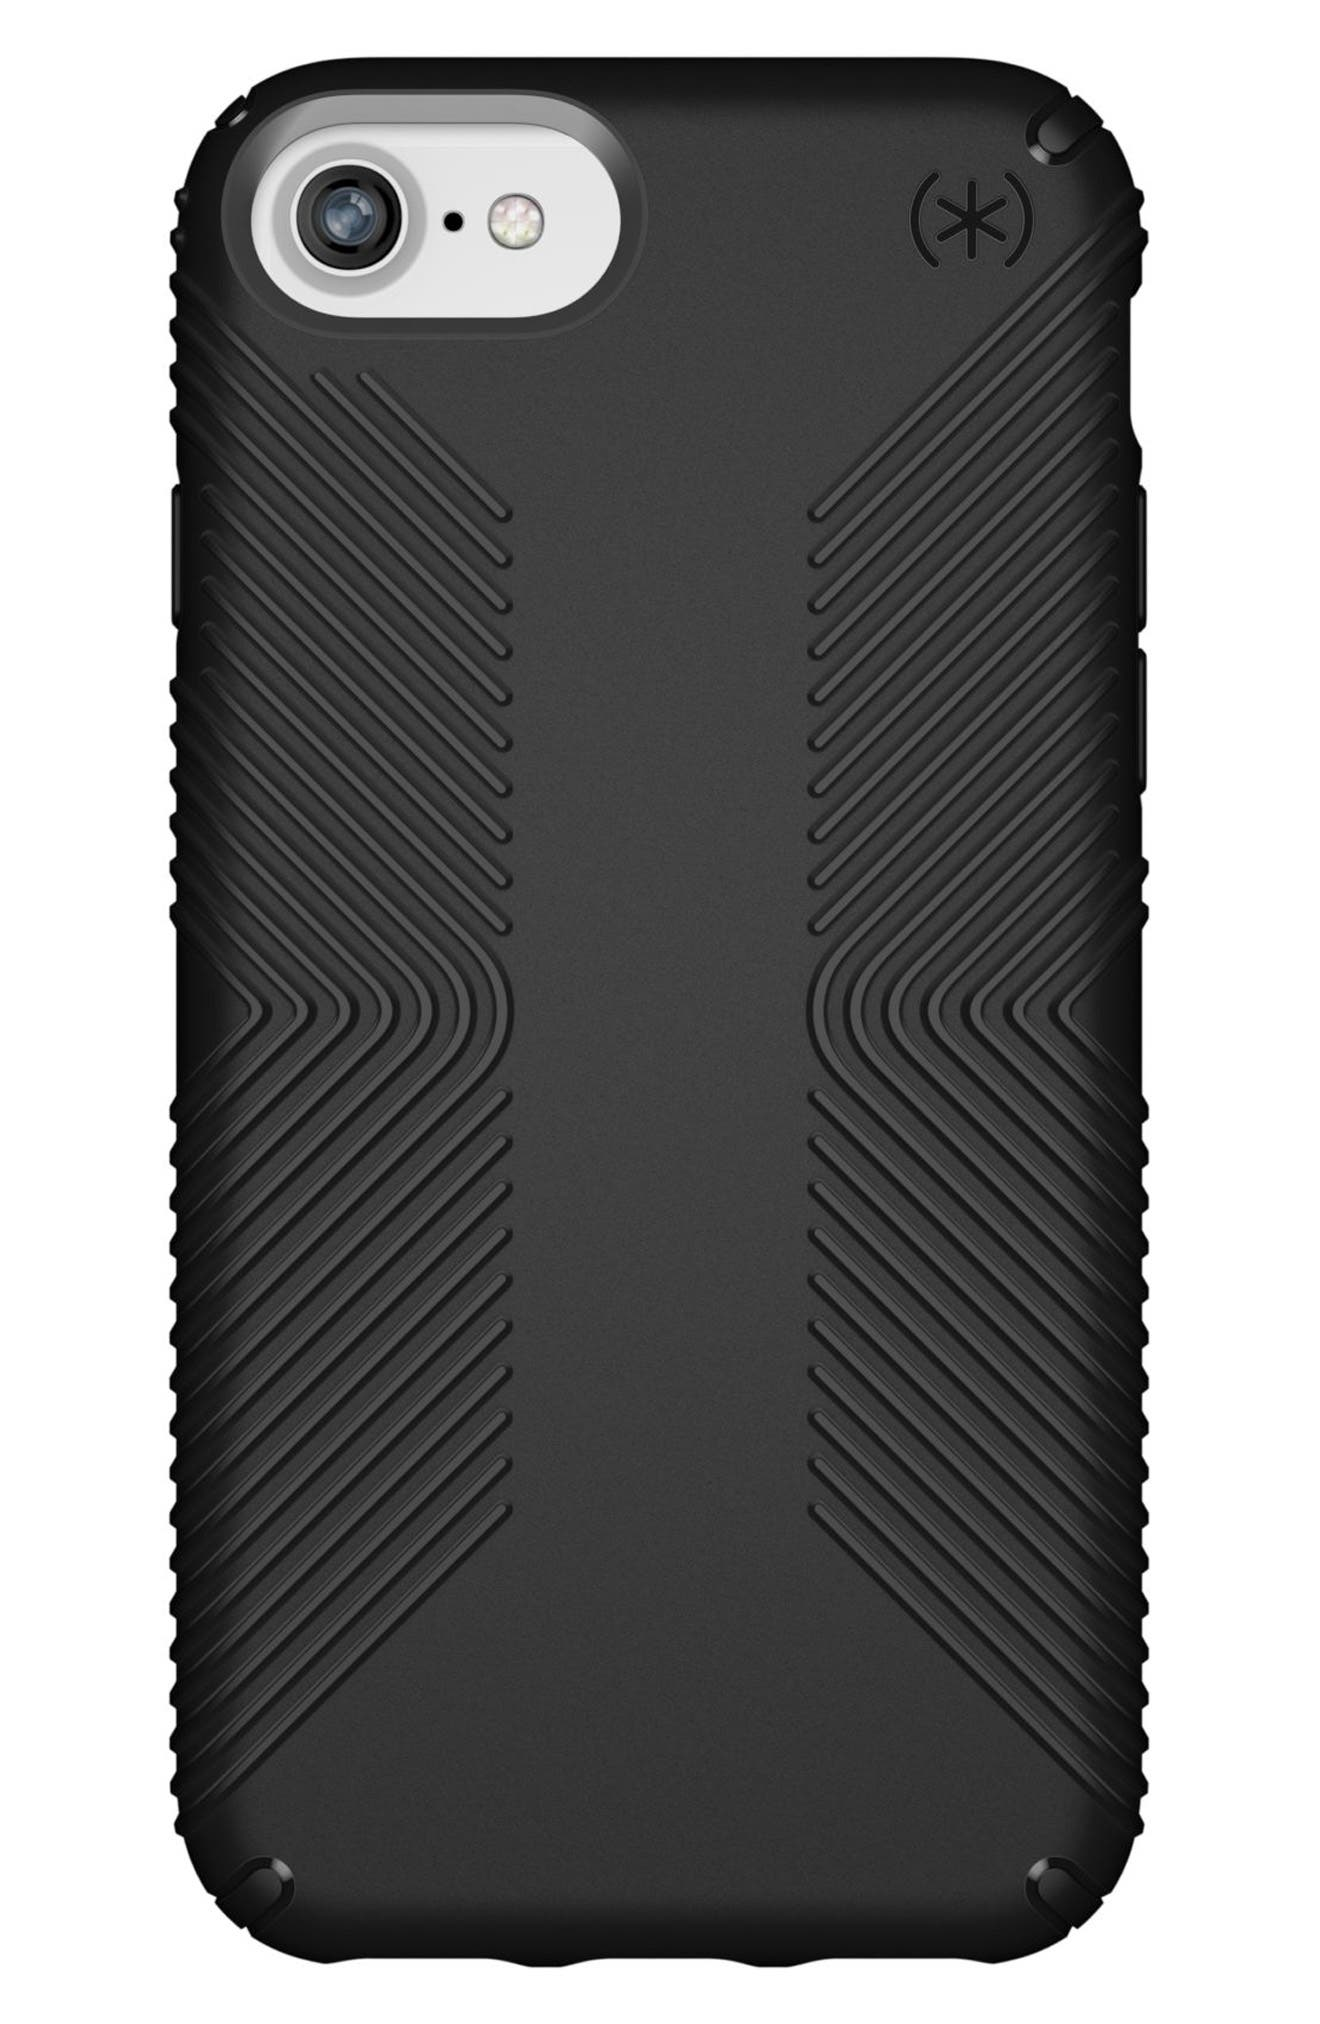 Grip iPhone 6/6s/7/8 Case,                         Main,                         color, Black/ Black